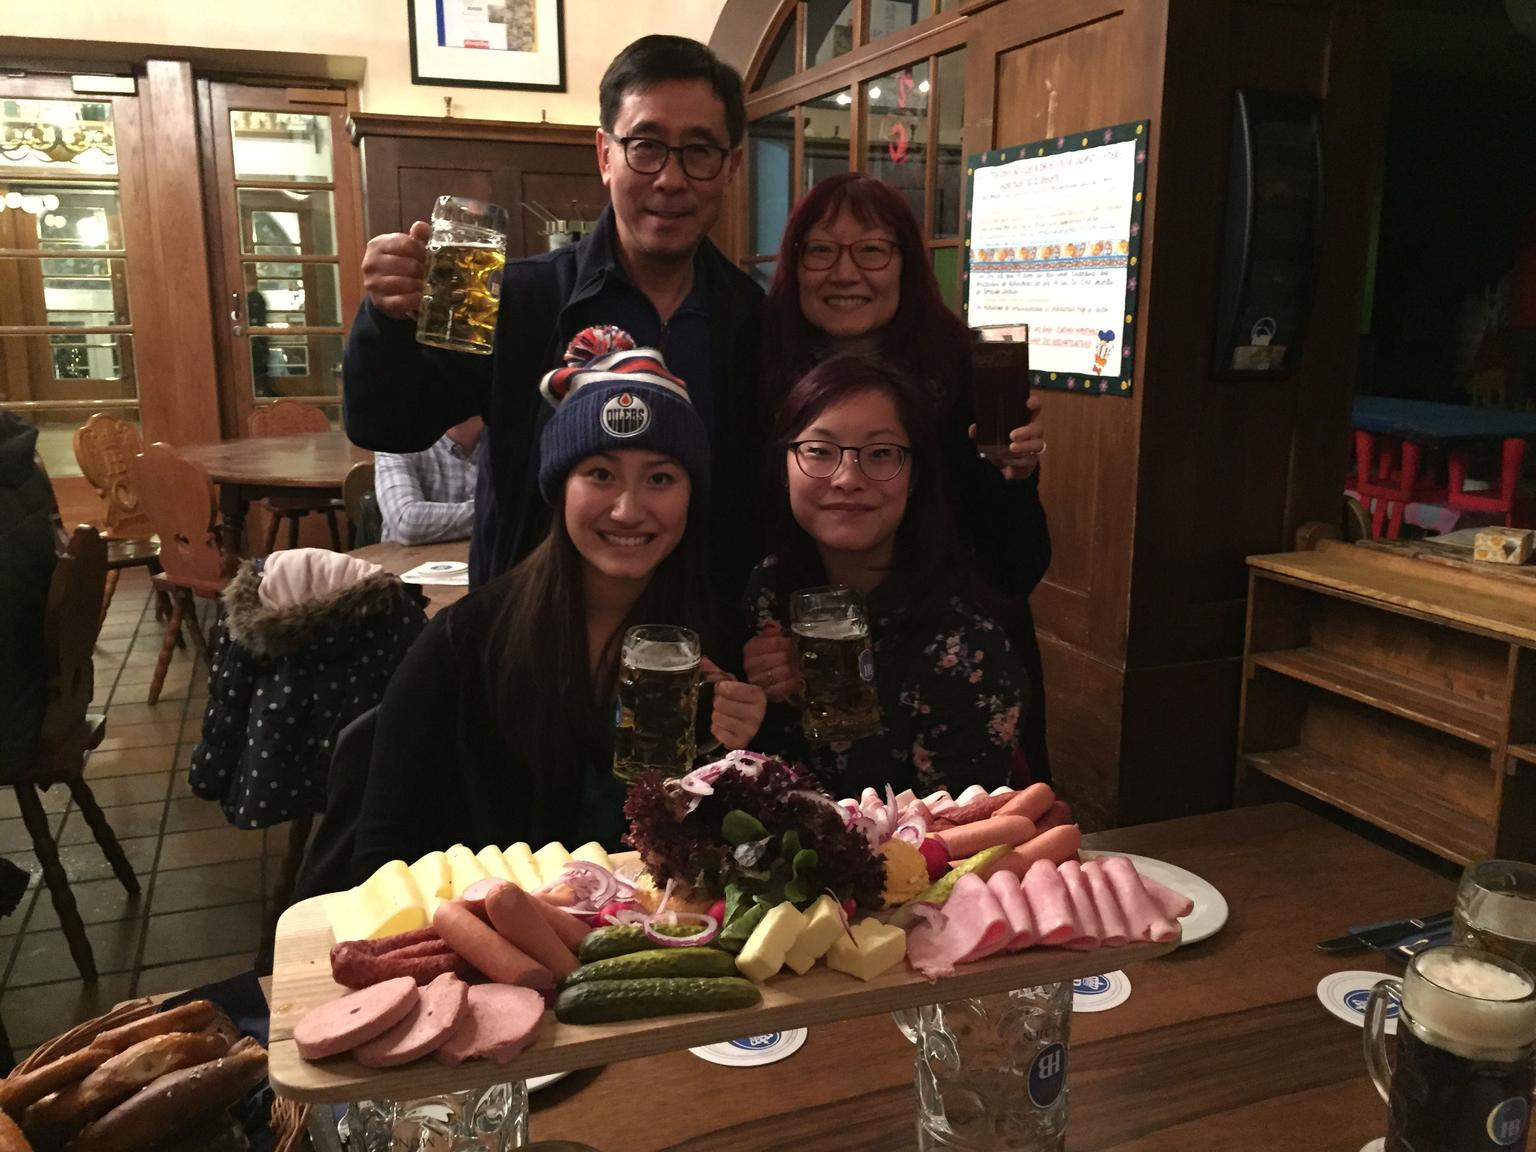 MORE PHOTOS, Bavarian Beer and Food Evening Tour in Munich